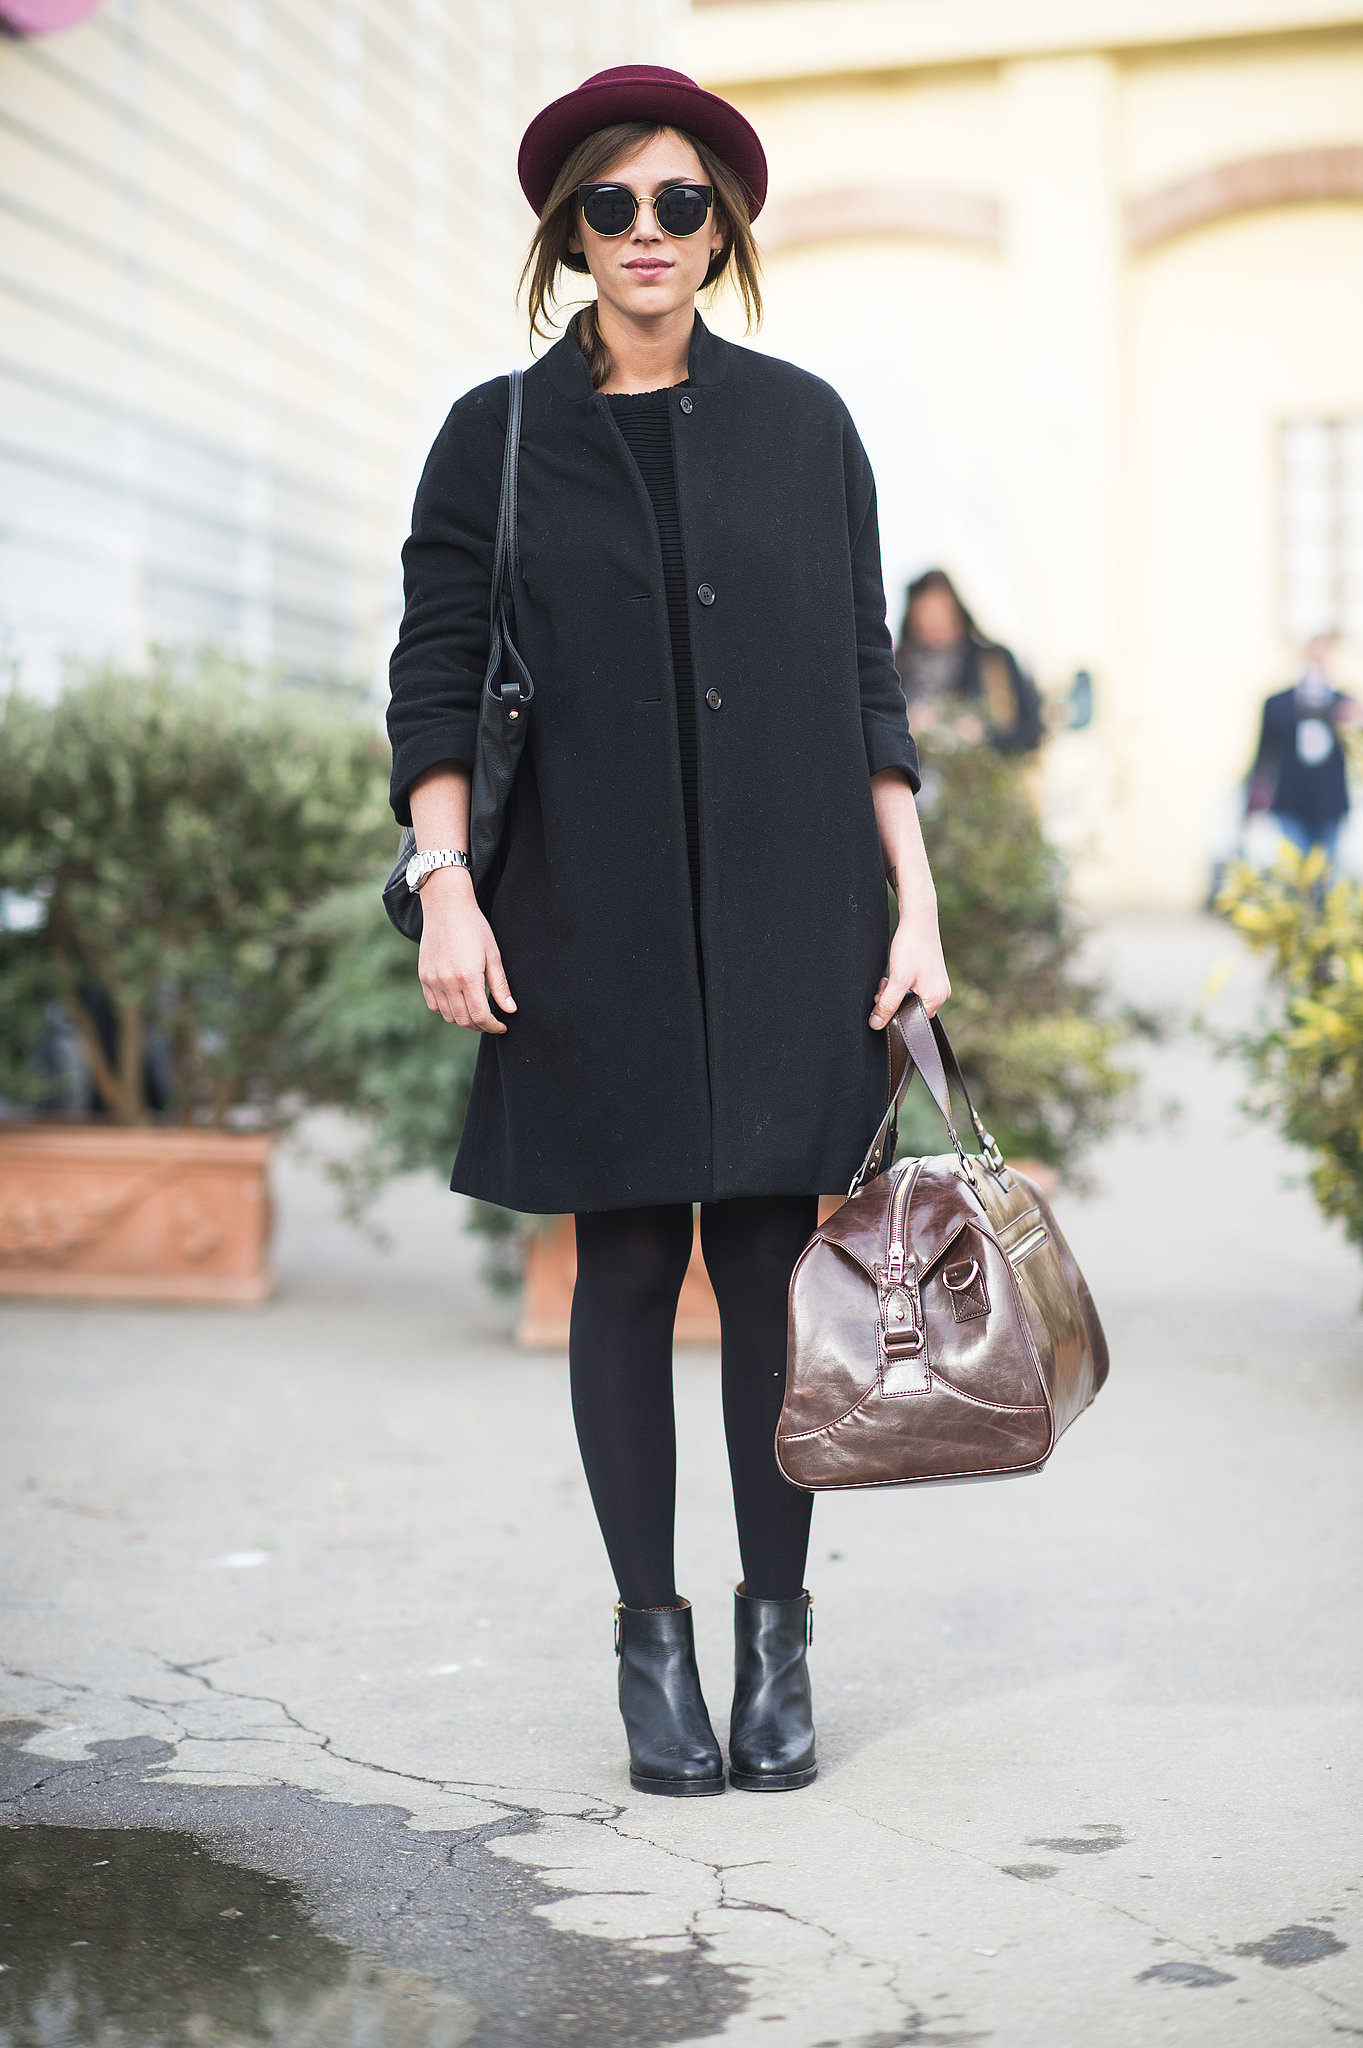 Nothing wrong with keeping it smart and understated. Source: Le 21ème | Adam Katz Sinding